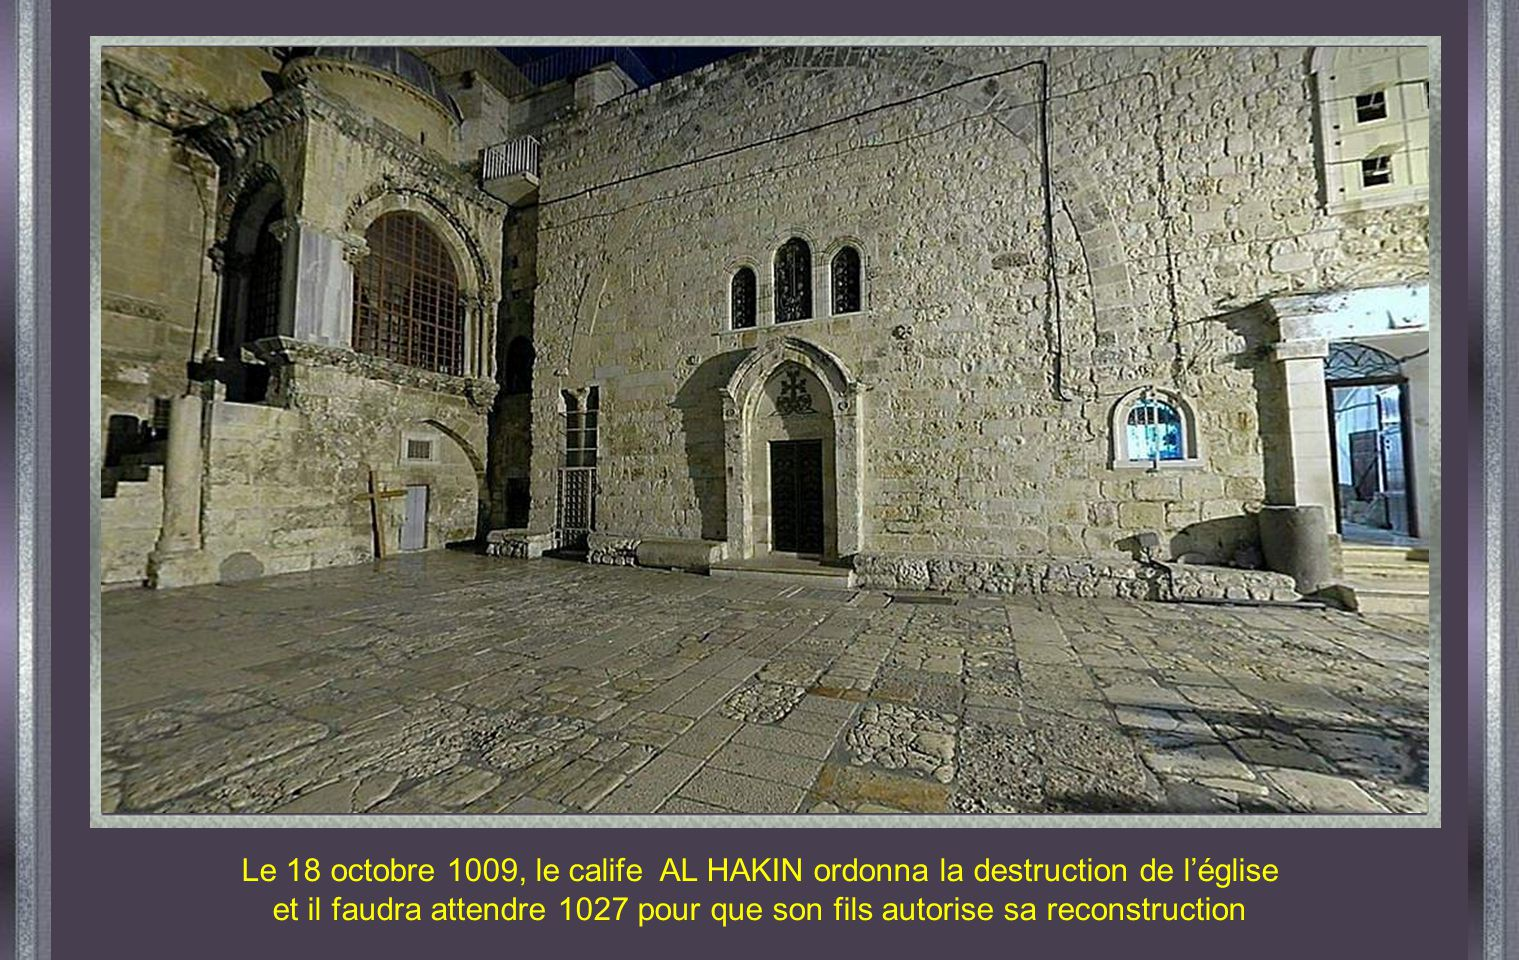 Le 18 octobre 1009, le calife AL HAKIN ordonna la destruction de l'église